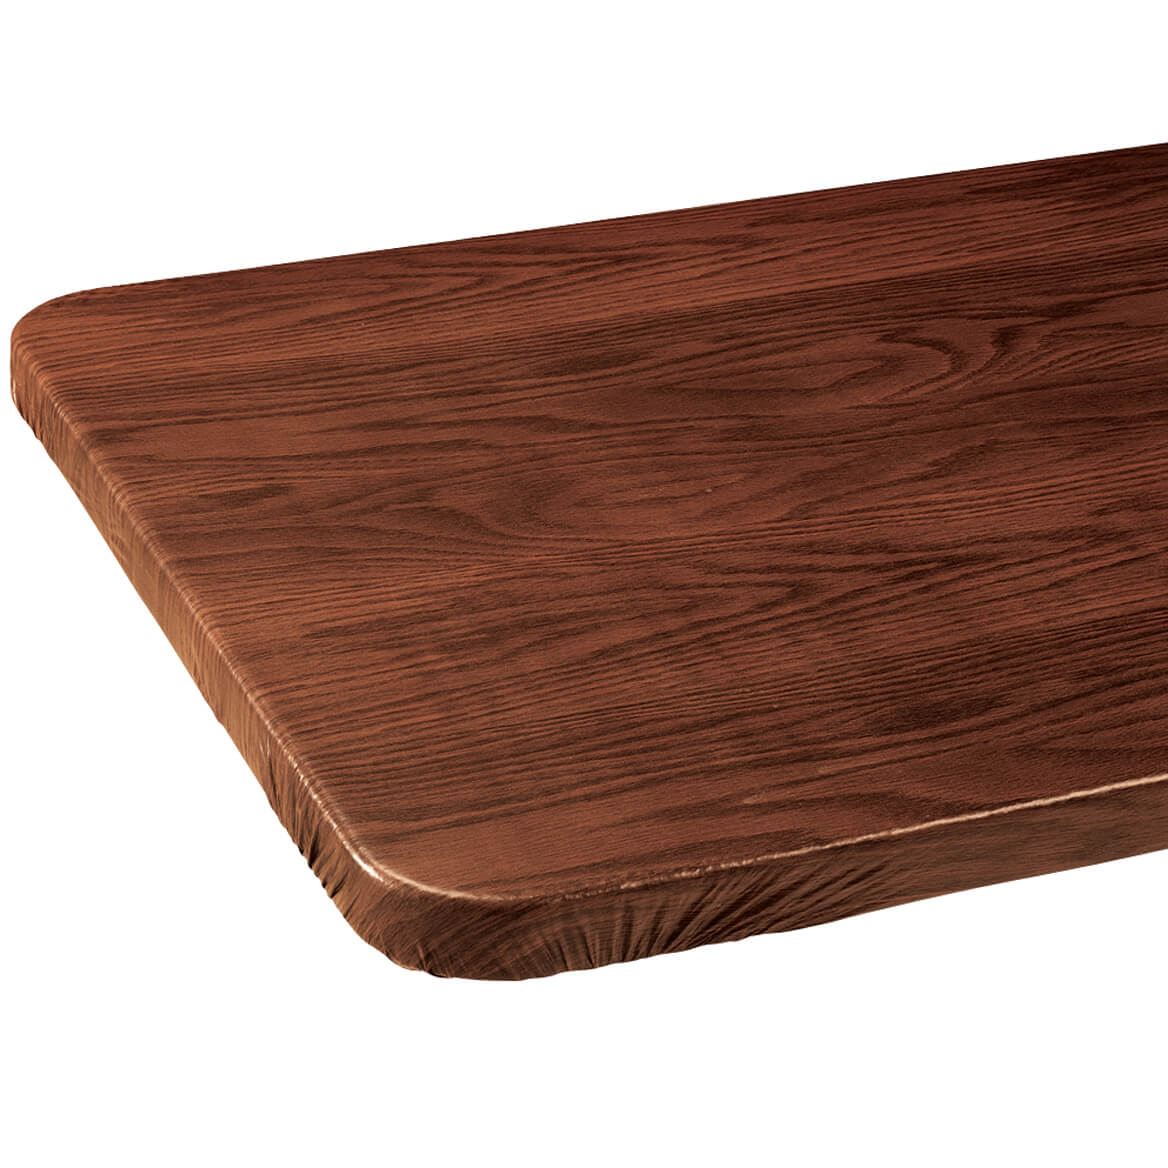 Wood Grain Vinyl Elasticized Banquet Table Cover